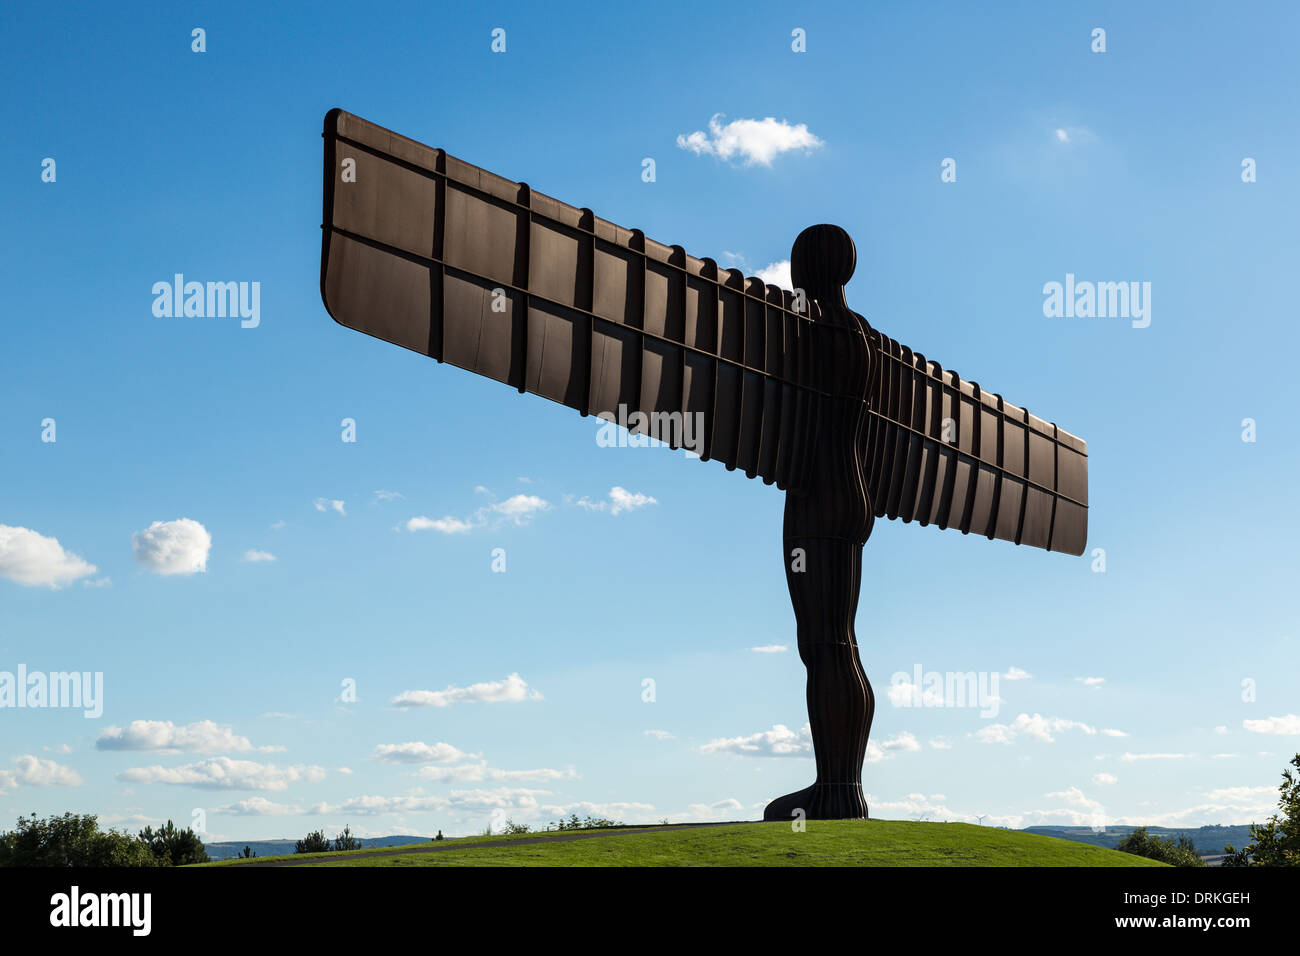 Angel of the North, Gateshead, Tyne and Wear, England - Stock Image